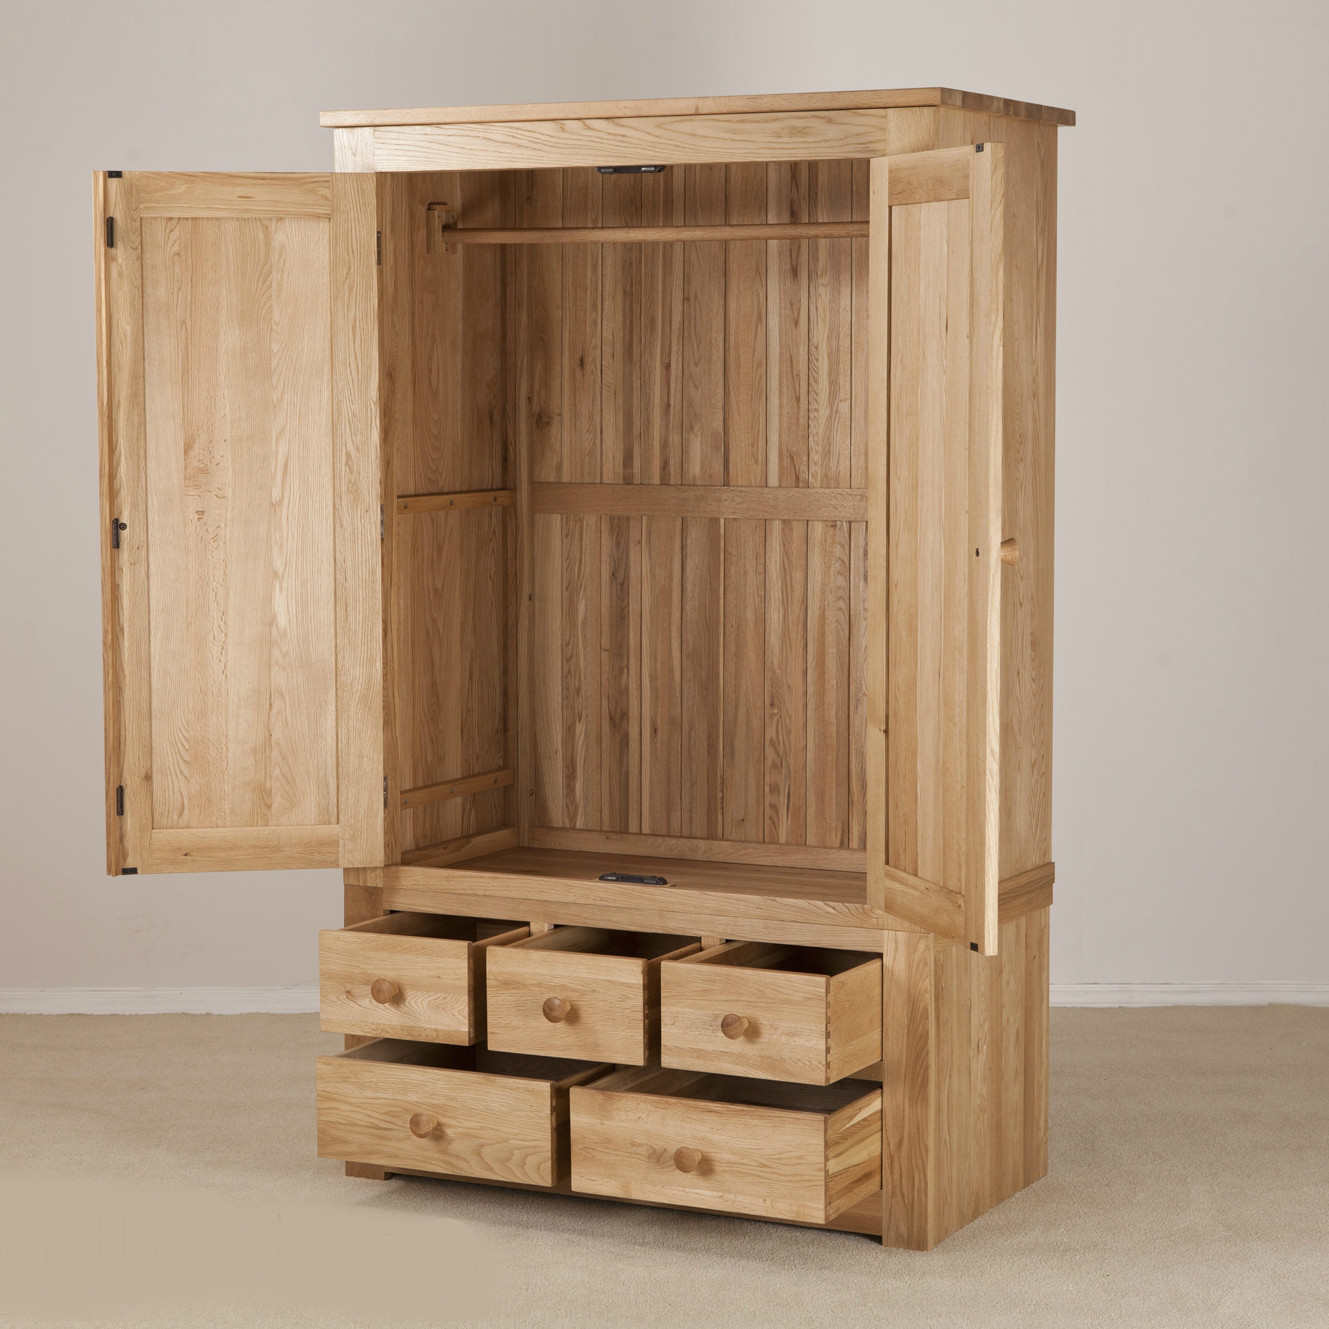 Cool Clifton Oak Wardrobe With Drawers from Quarter Furniture - 2 wooden wardrobe with drawers